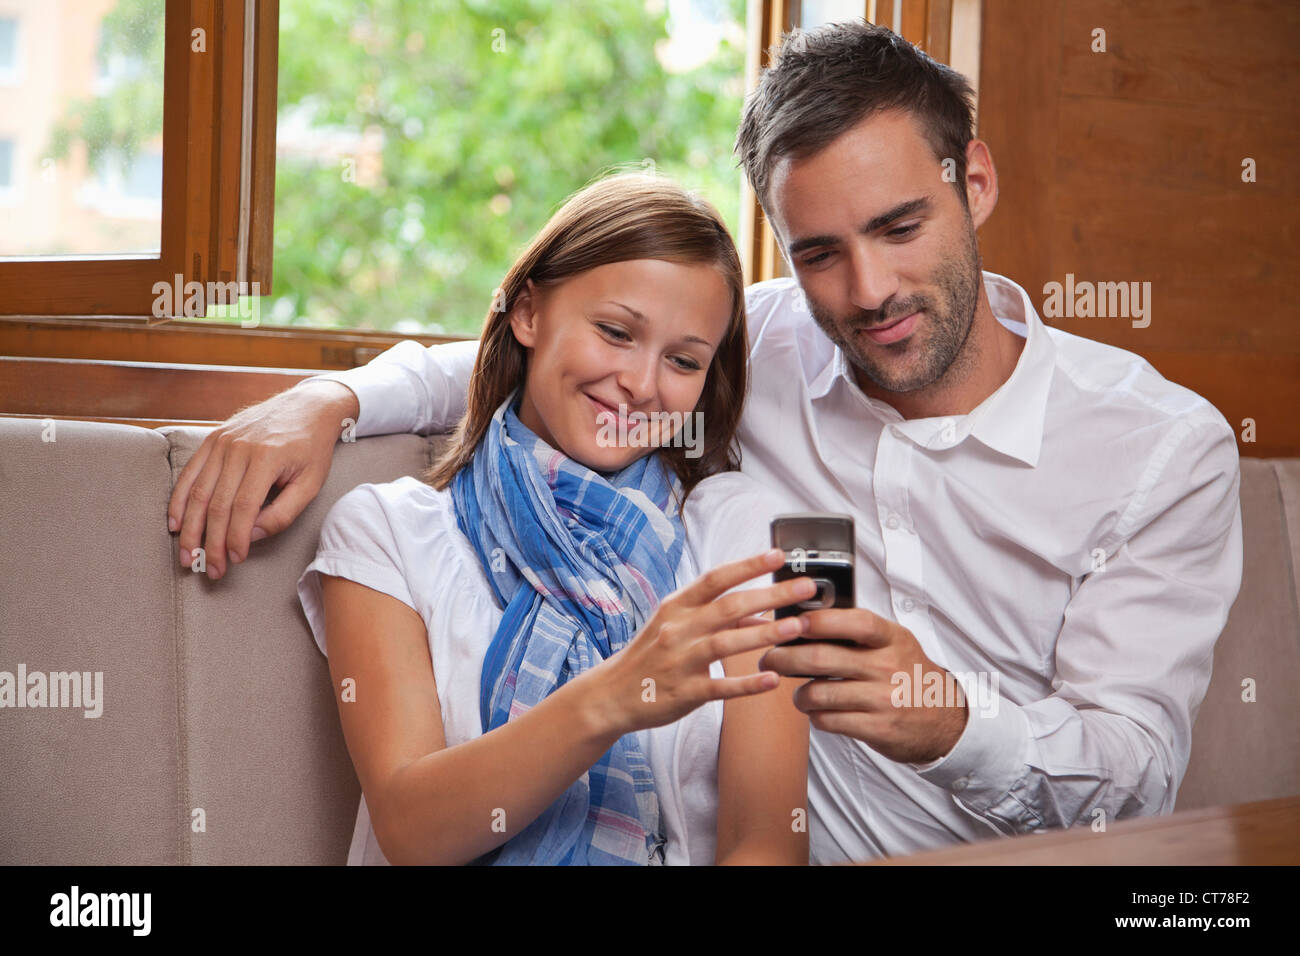 young couple looking at display of mobile phone - Stock Image